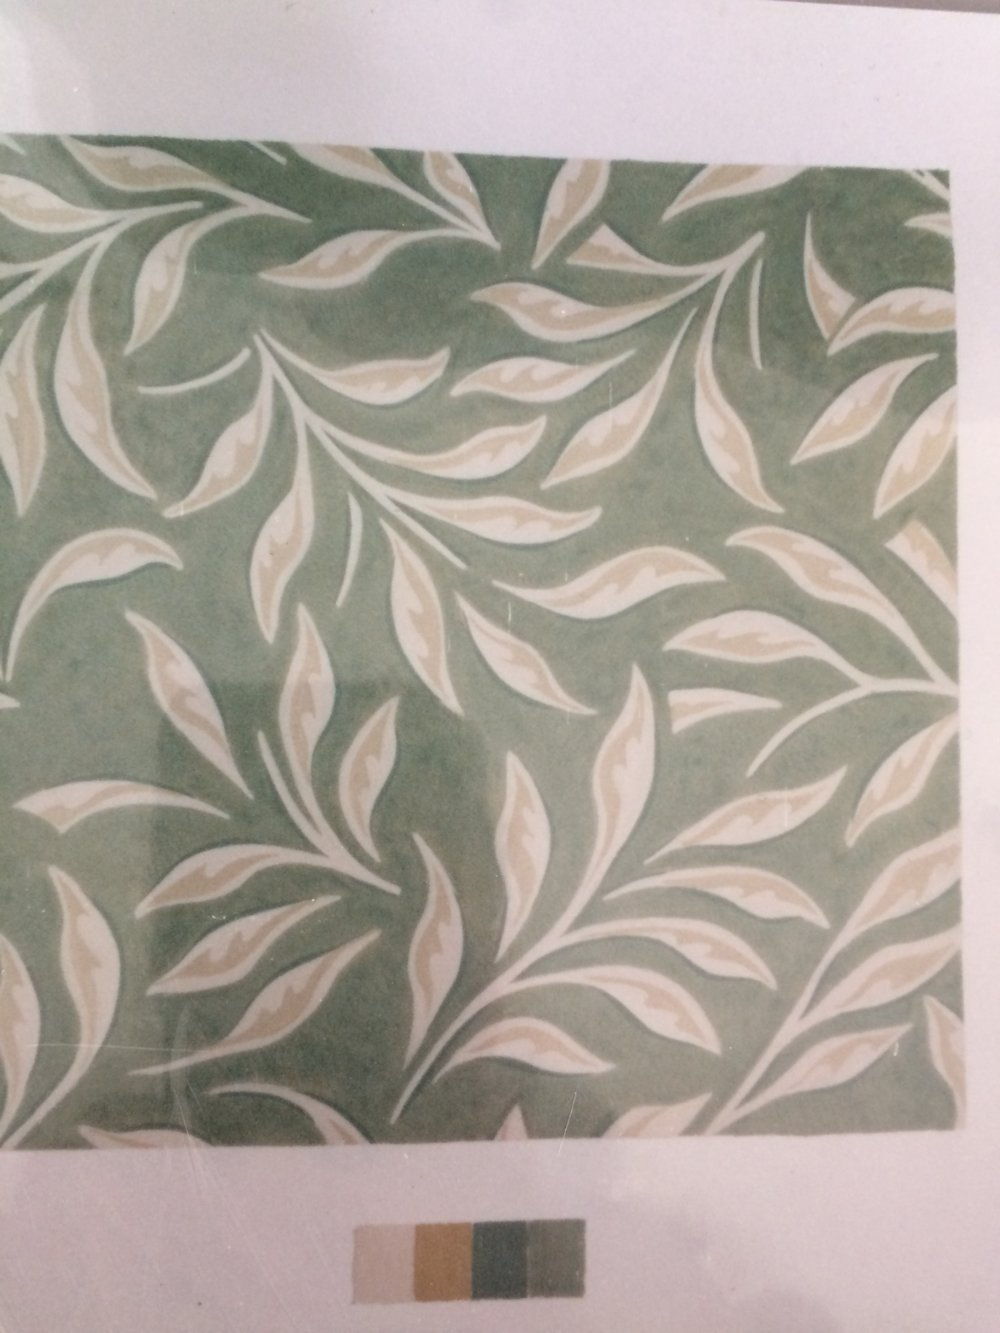 Home goods jacquard design for outdoor textile surface coverings